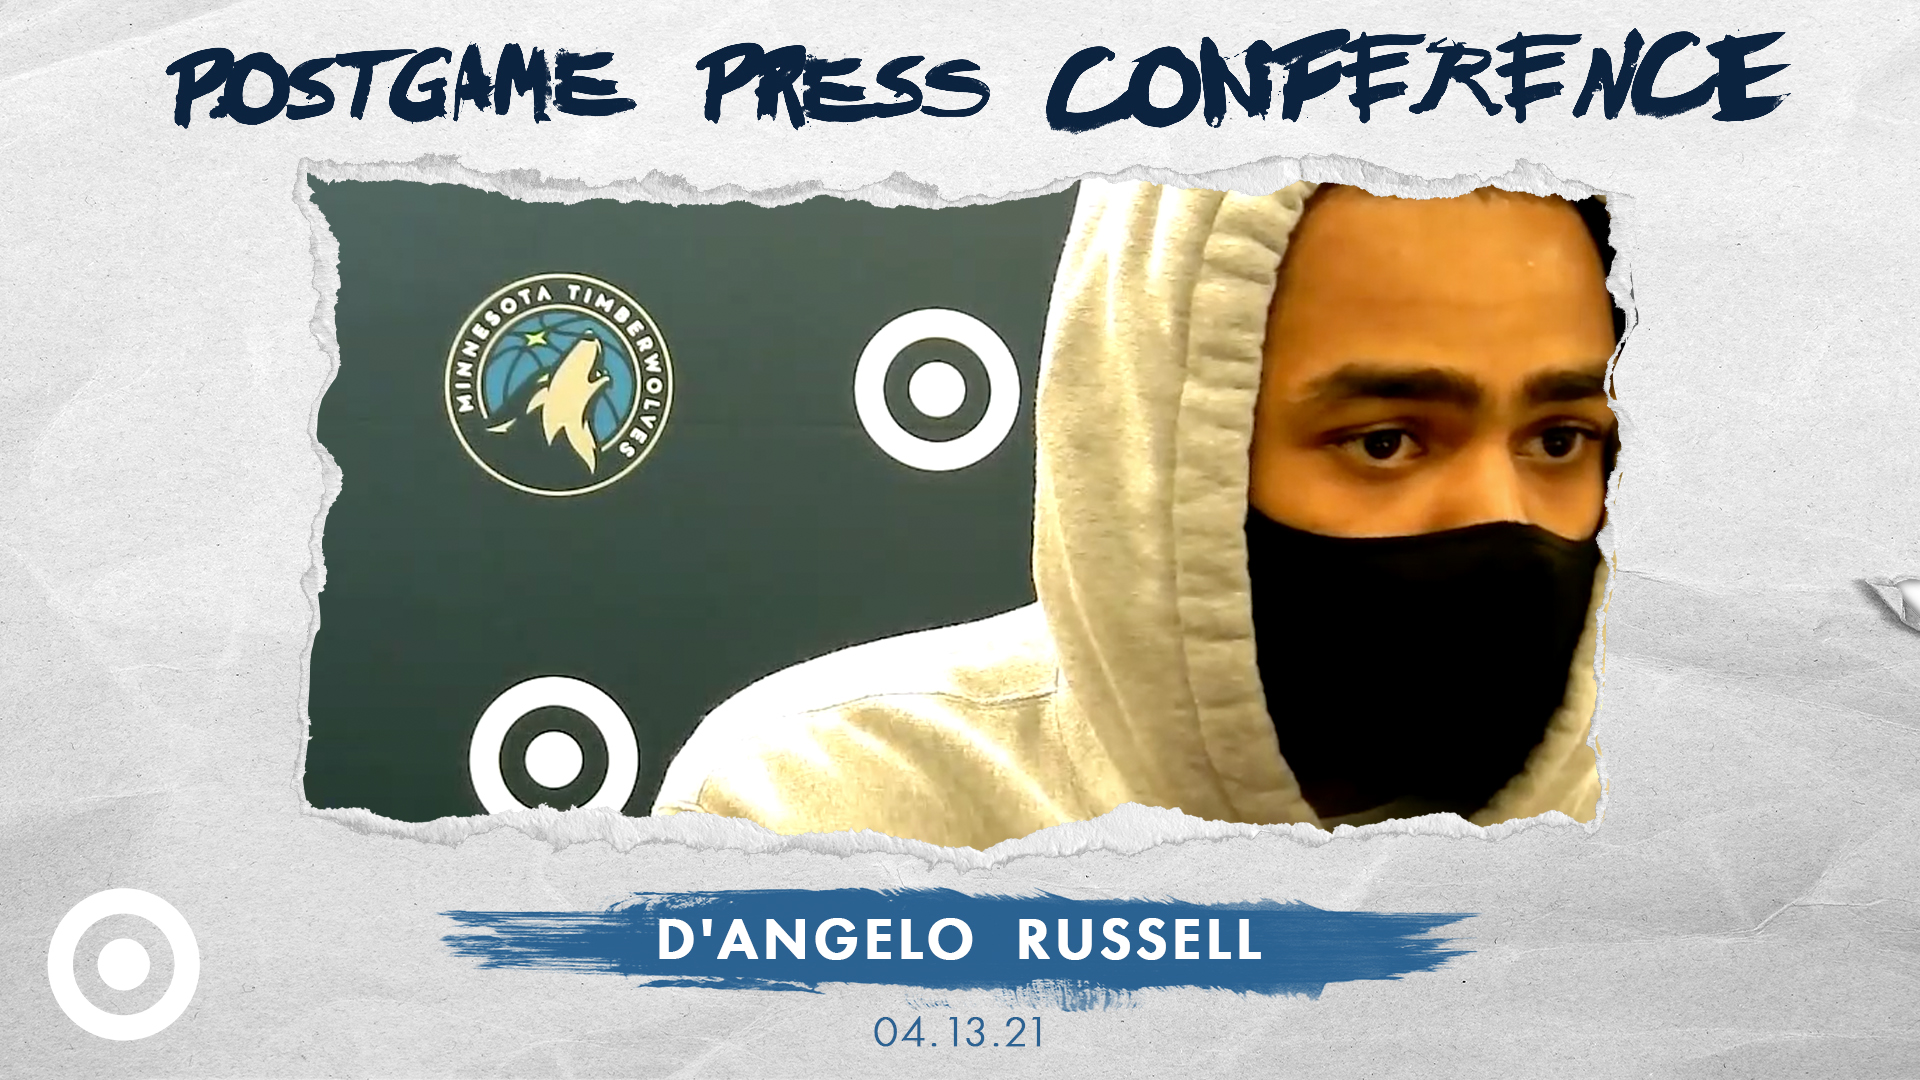 D'Angelo Russell Postgame Press Conference - April 13, 2021